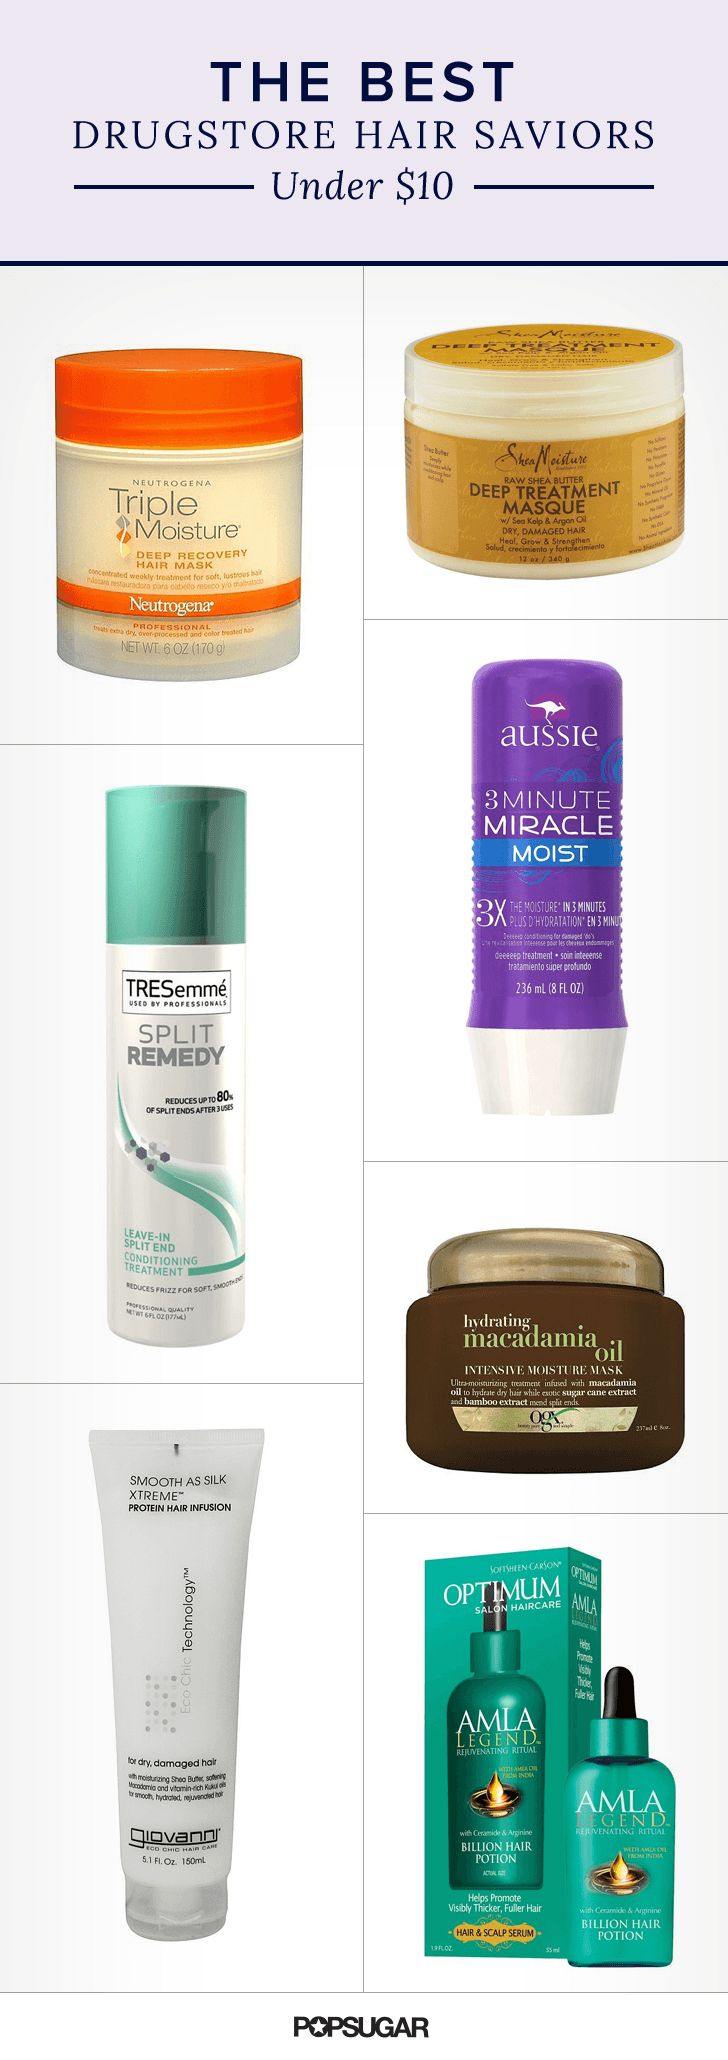 Hair Damaged From Vacation? Revive It With a Mask For Under $10